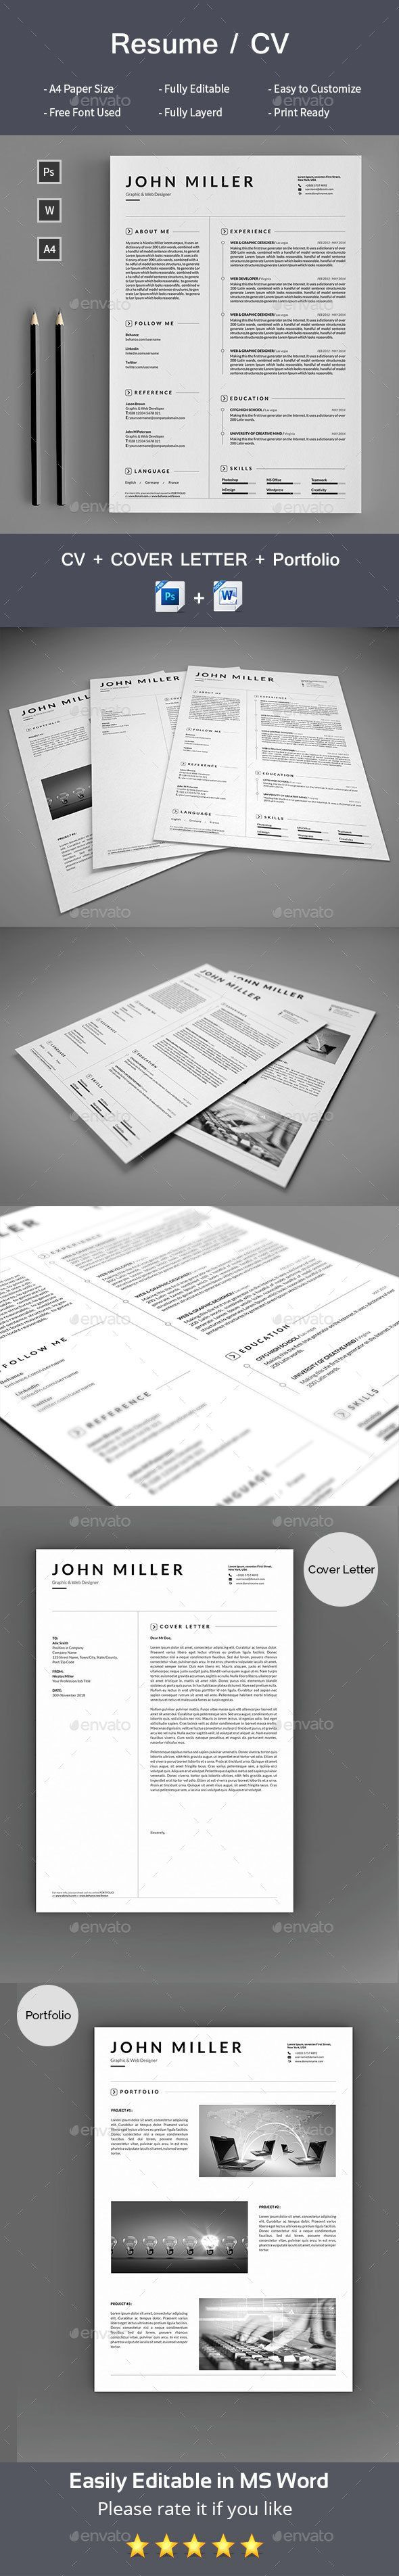 Resume Resumes Stationery Modeling Resume Simple